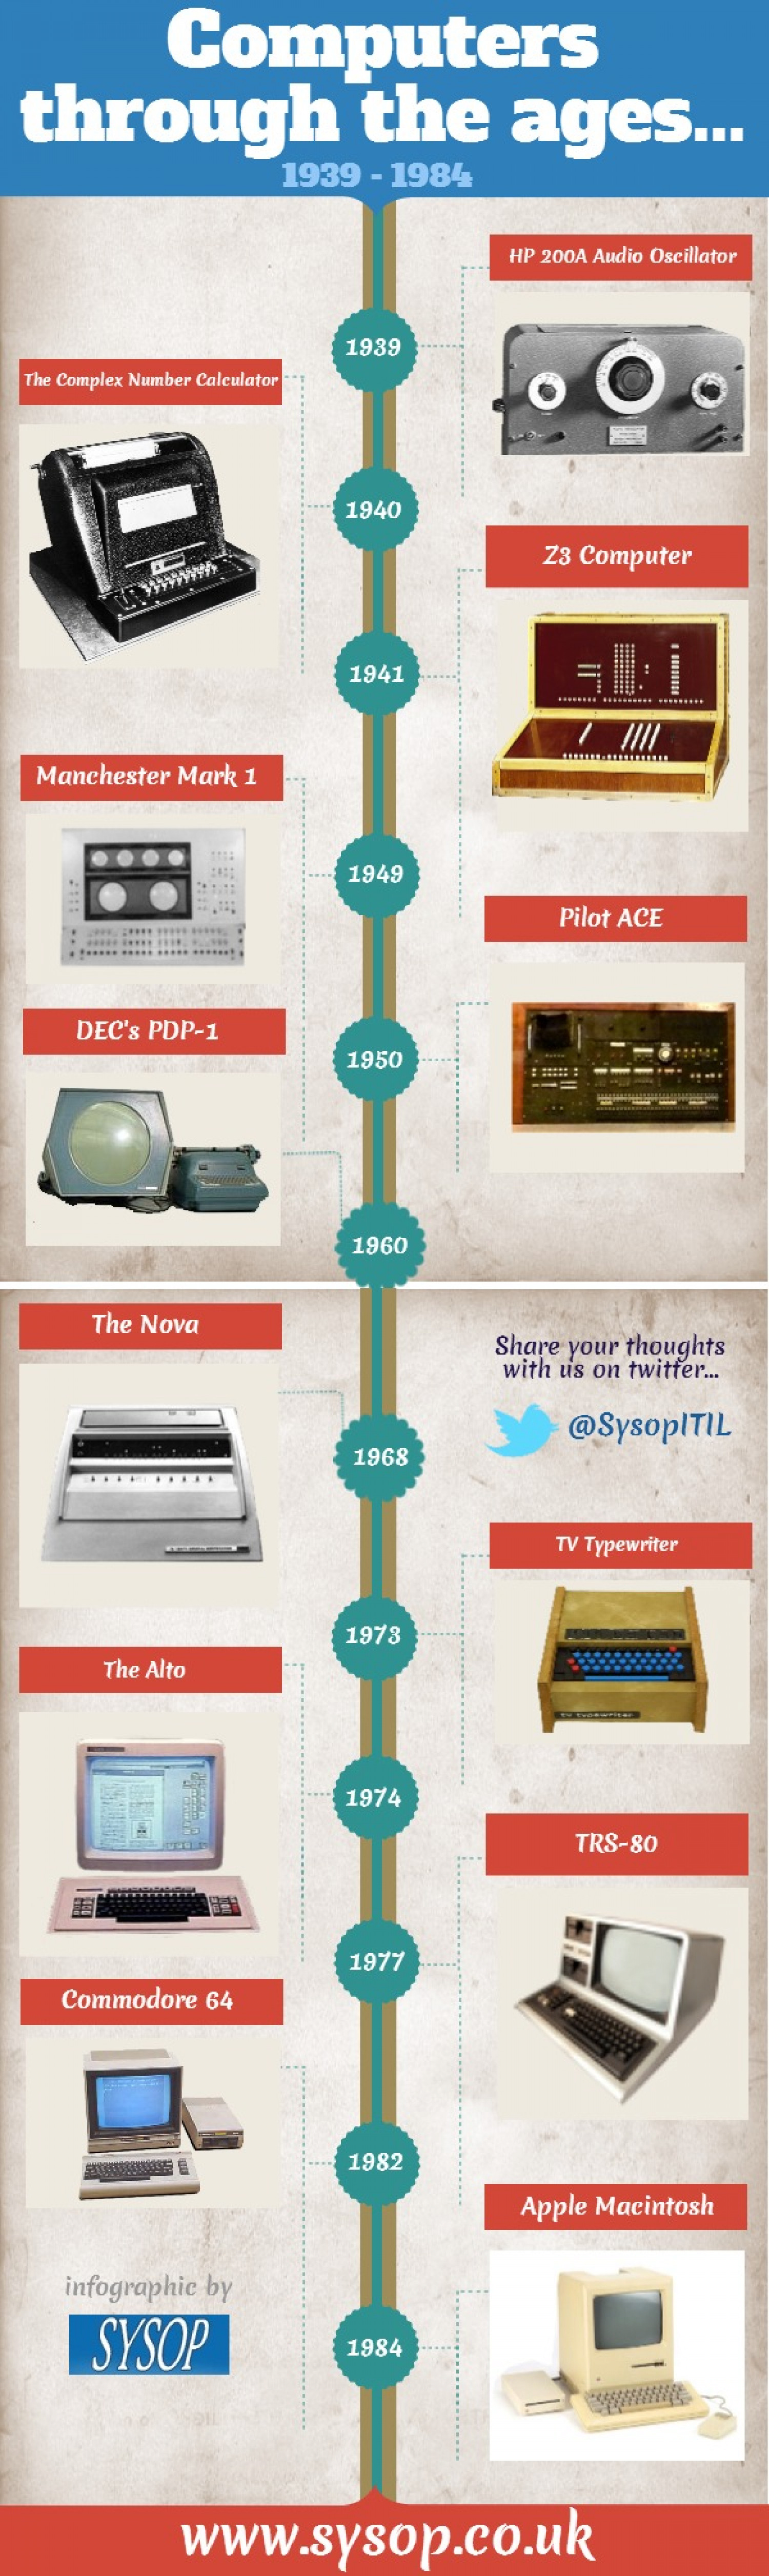 Computers Through The Ages